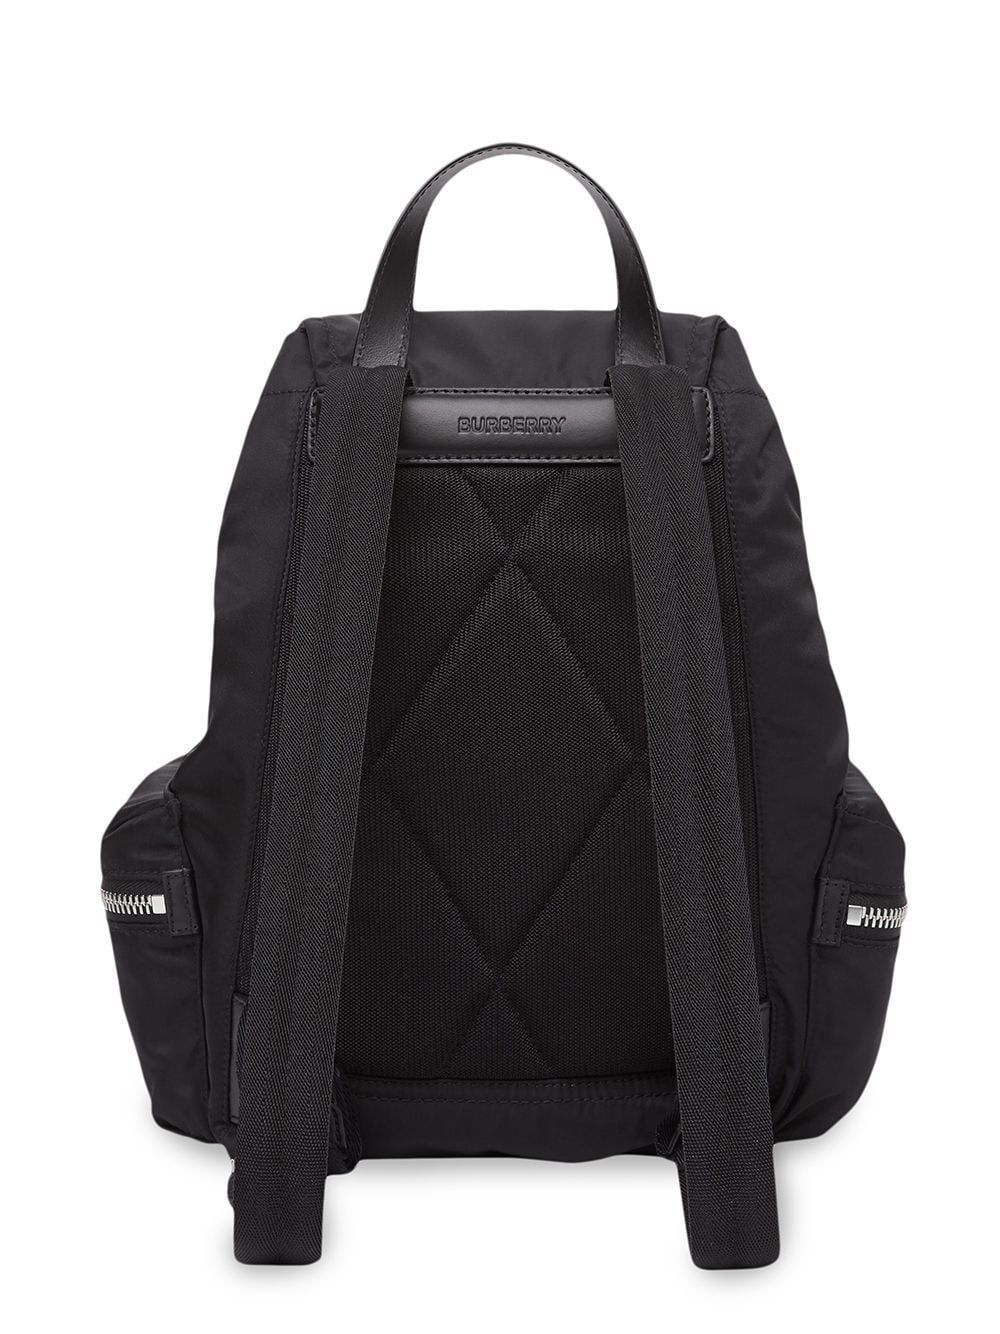 BURBERRY WOMEN'S 8021261 BLACK POLYAMIDE BACKPACK